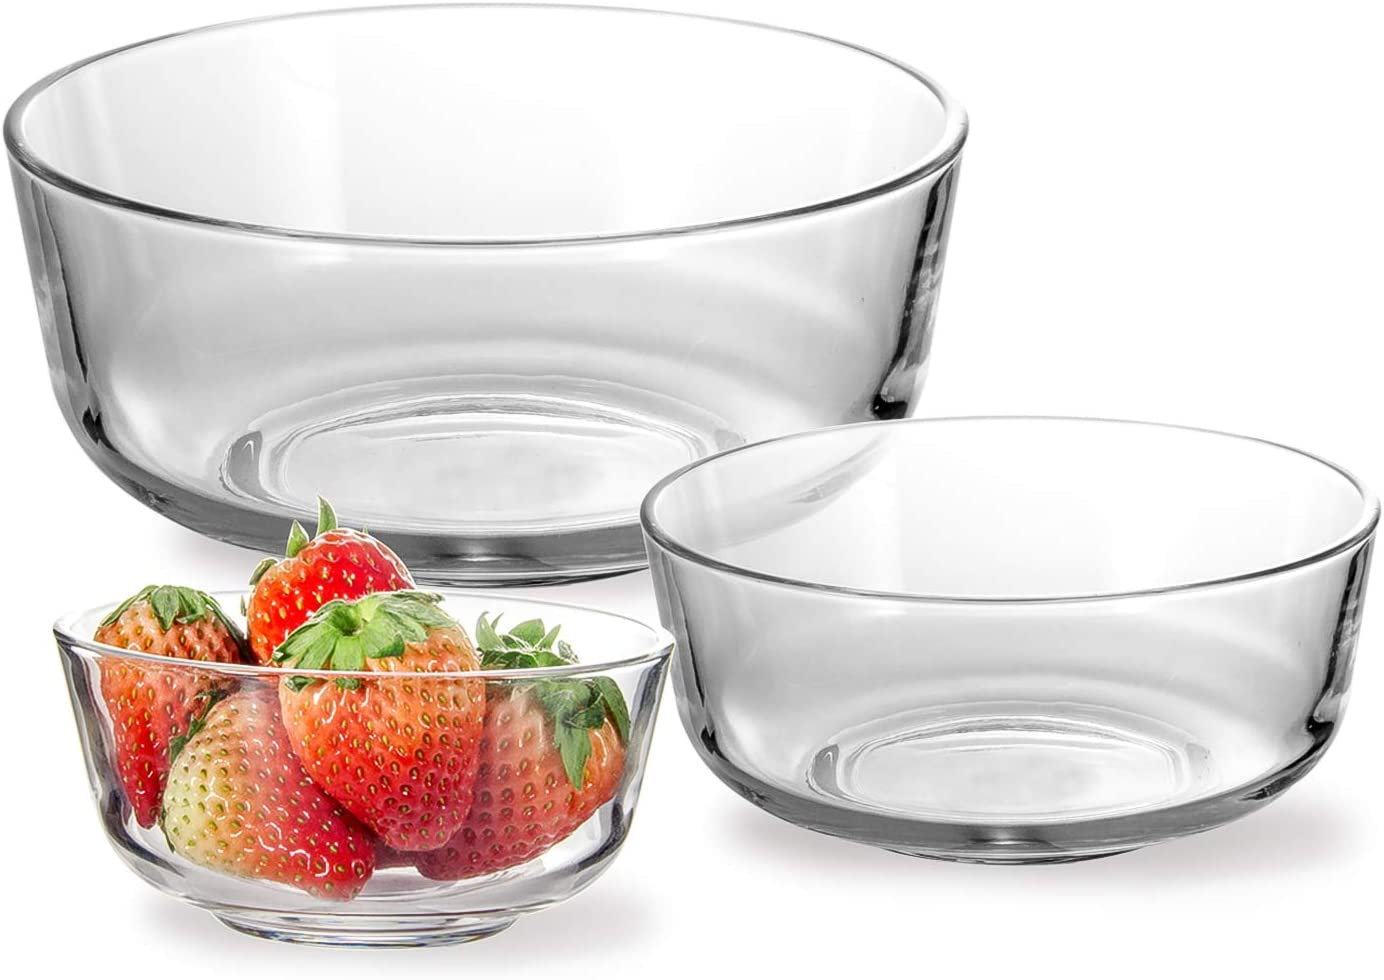 3 Pcs Glsss Mixing Bowls,WERTIOO 6.9 Inch+ 5.6 Inch + 4.4 Inch Stackable Bowl Set for kitcken,dishwasher, freezer, oven, microwave Safe